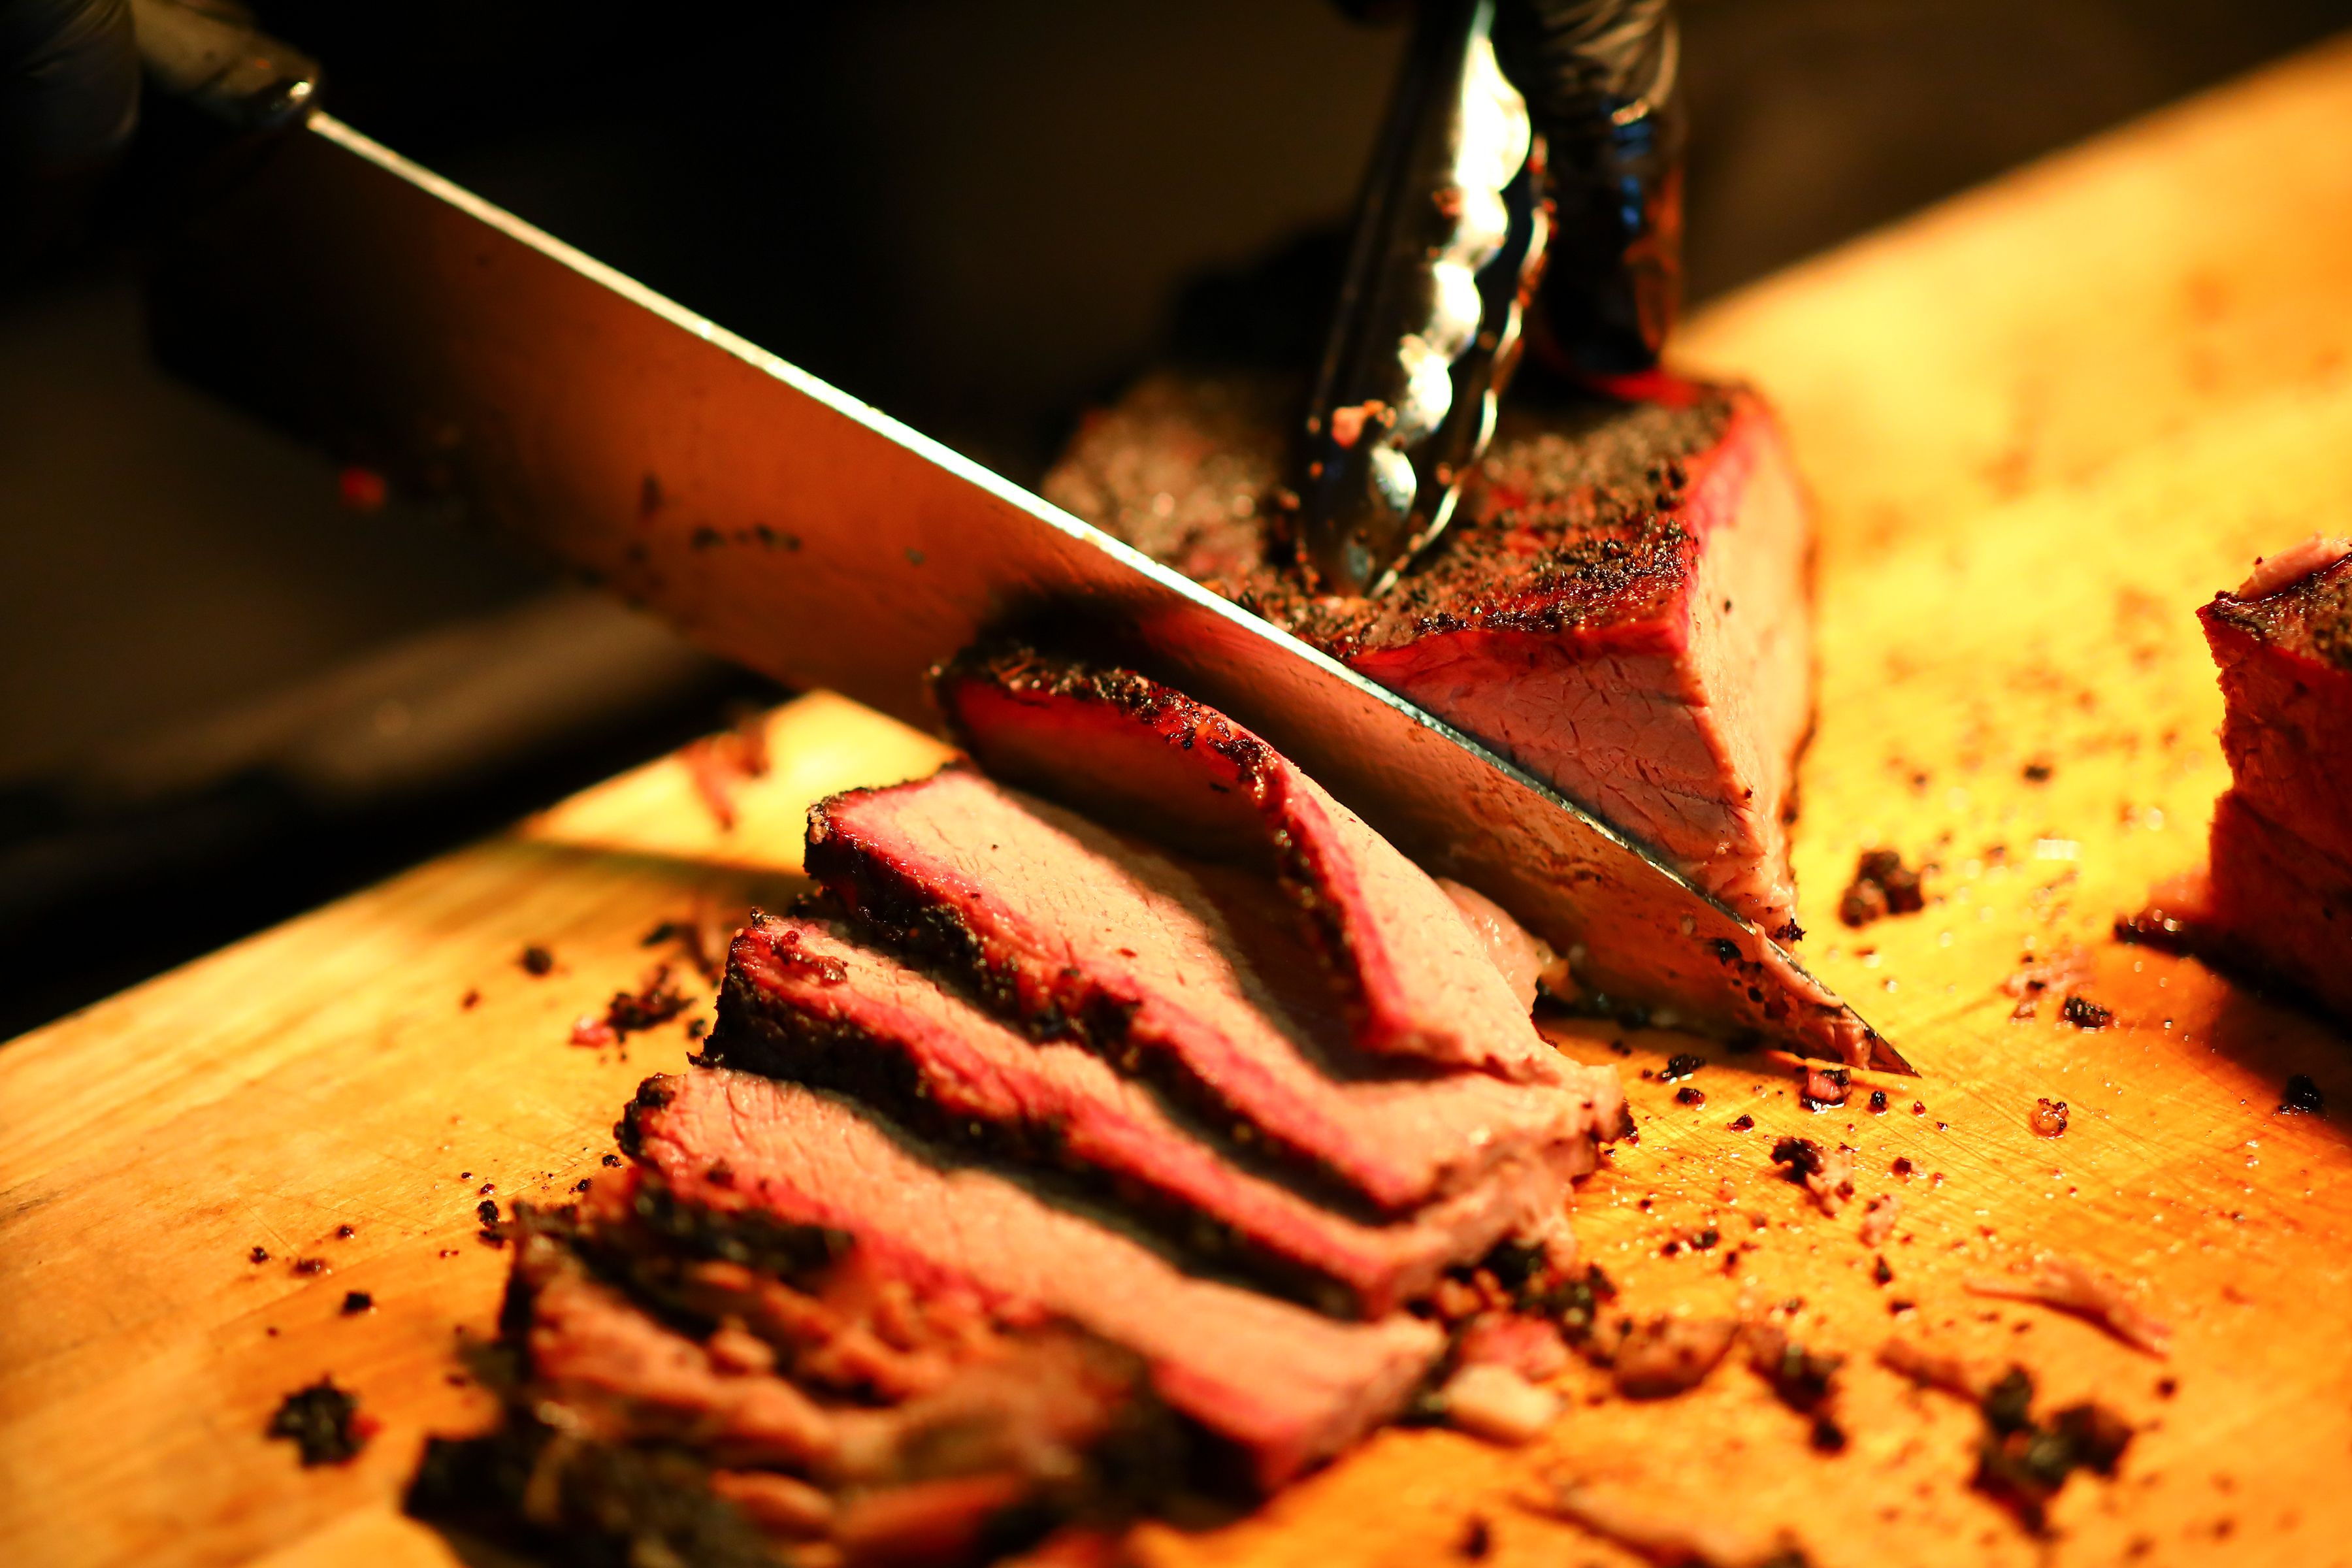 Our suite menus offer a variety of dishes from James Beard award-winning chefs from Houston and around Texas